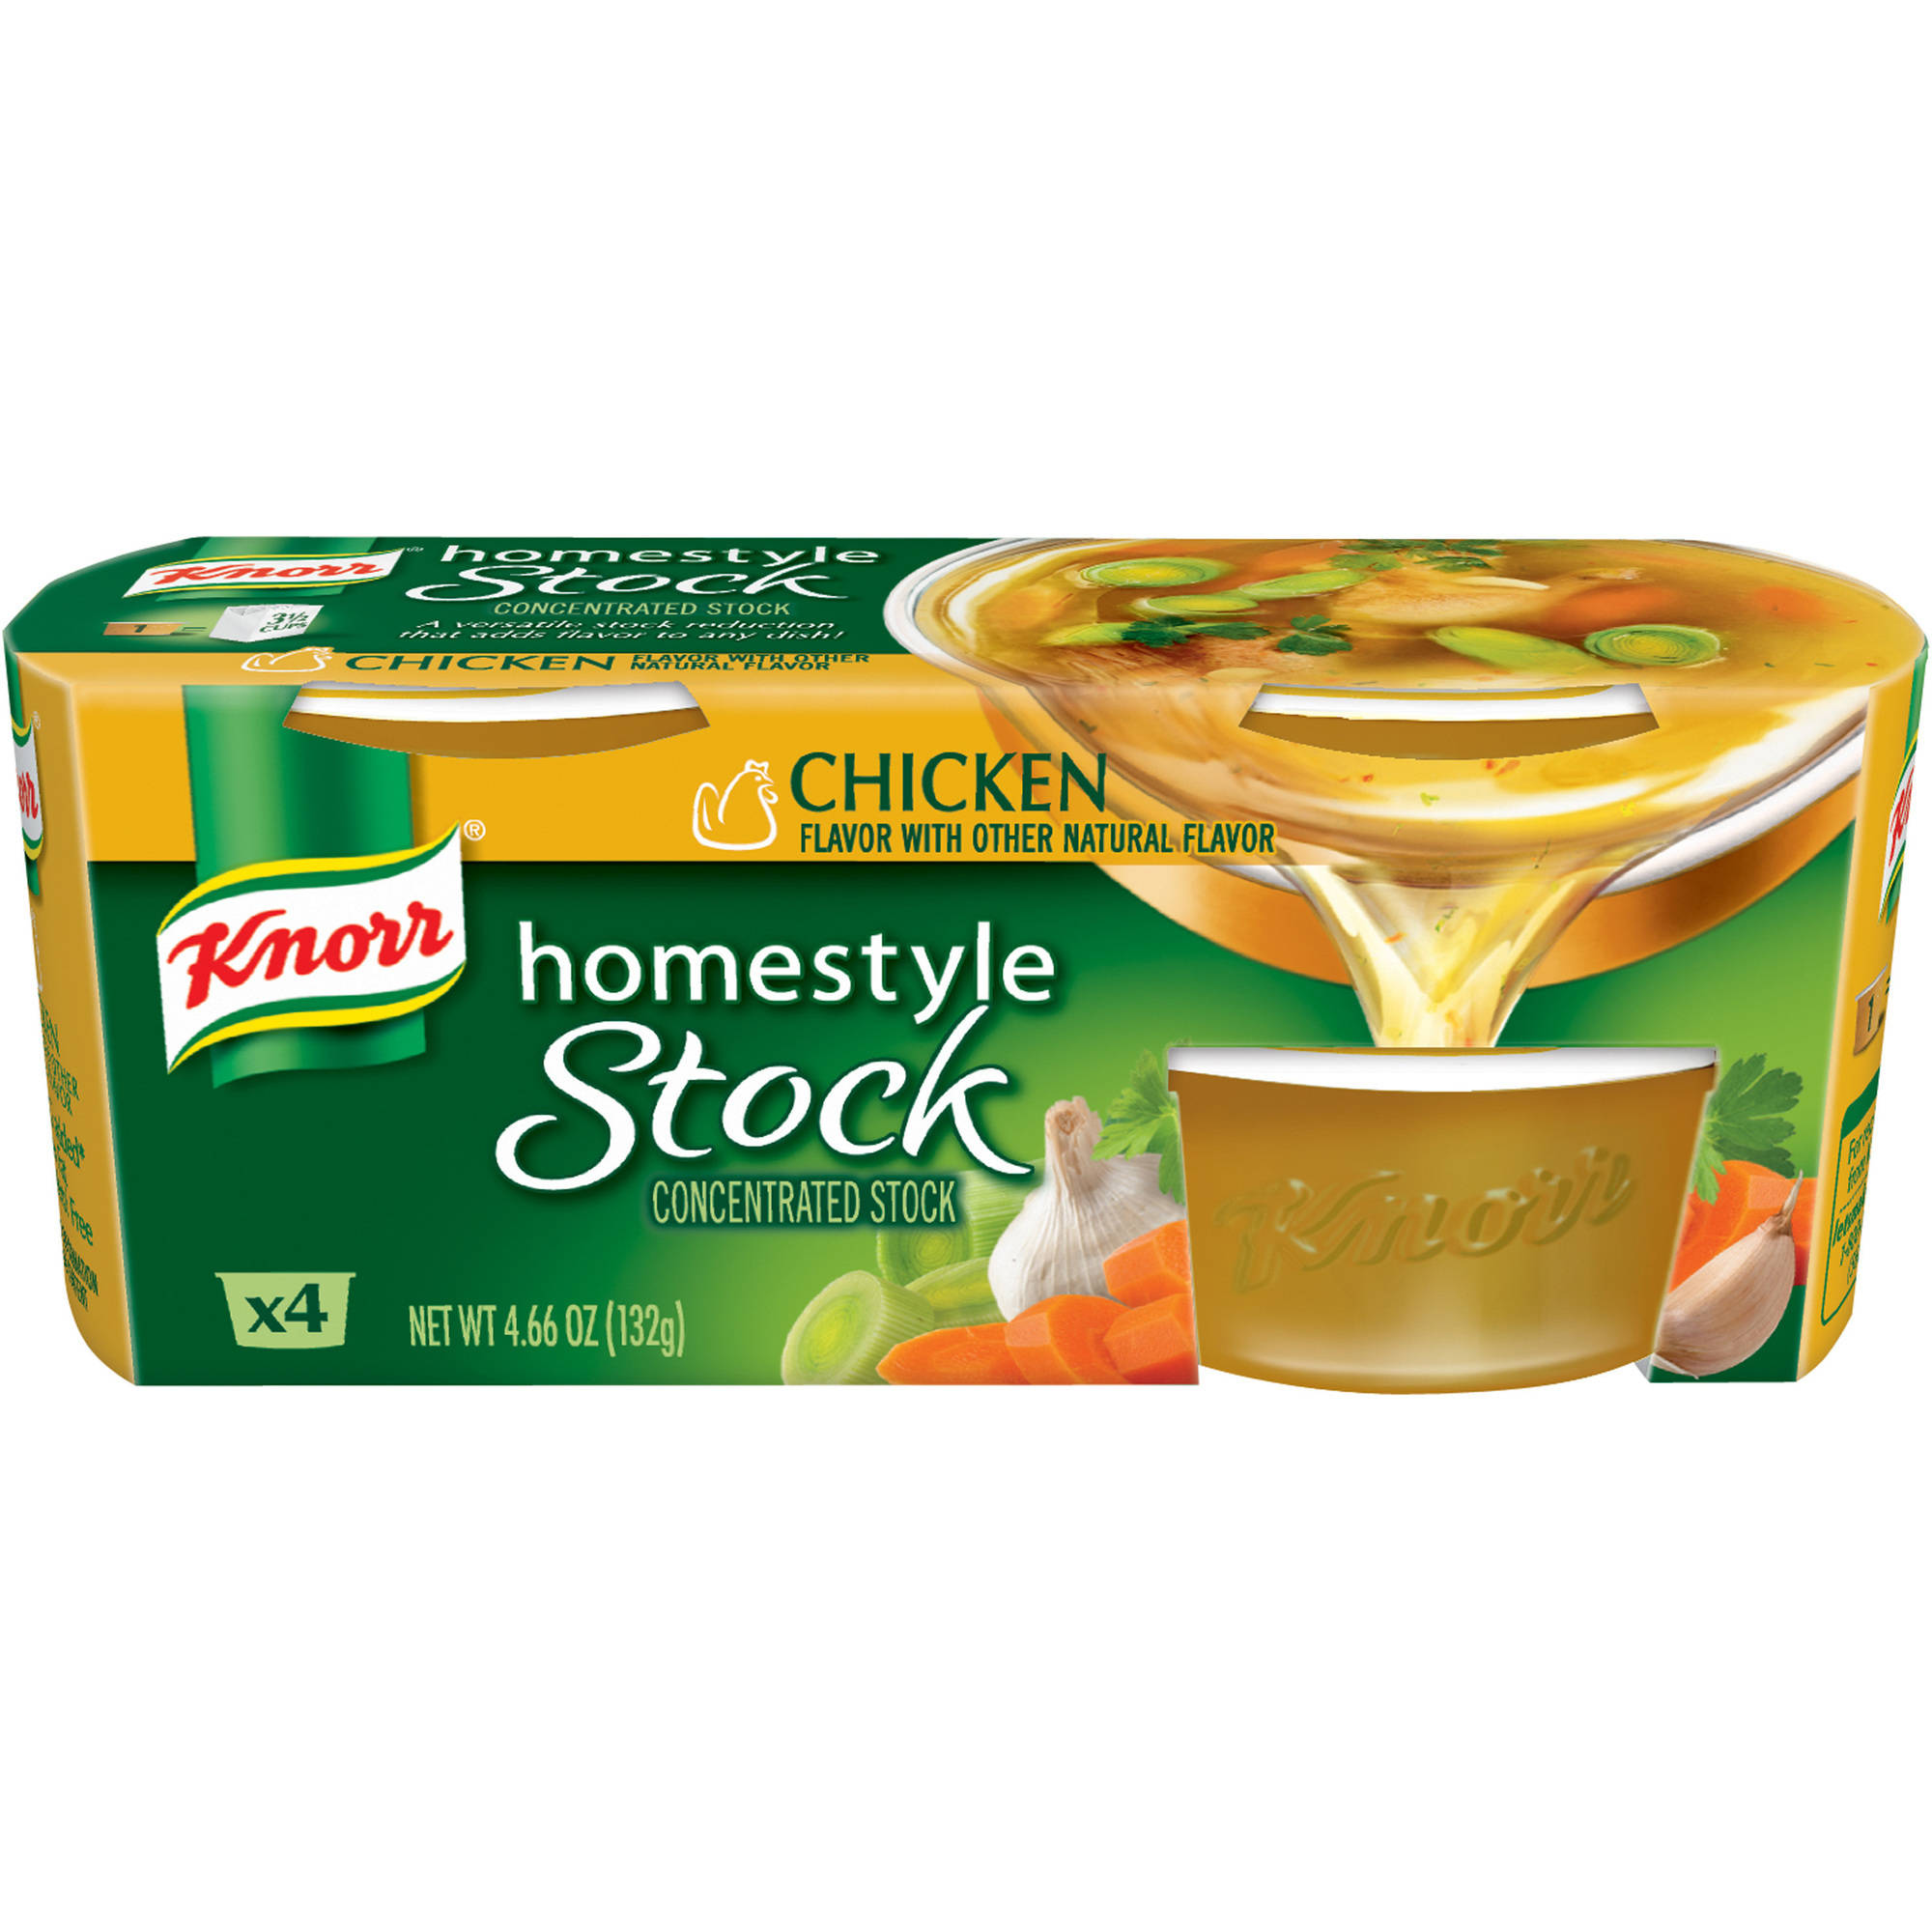 Knorr Chicken Homestyle Stock, 4 ct